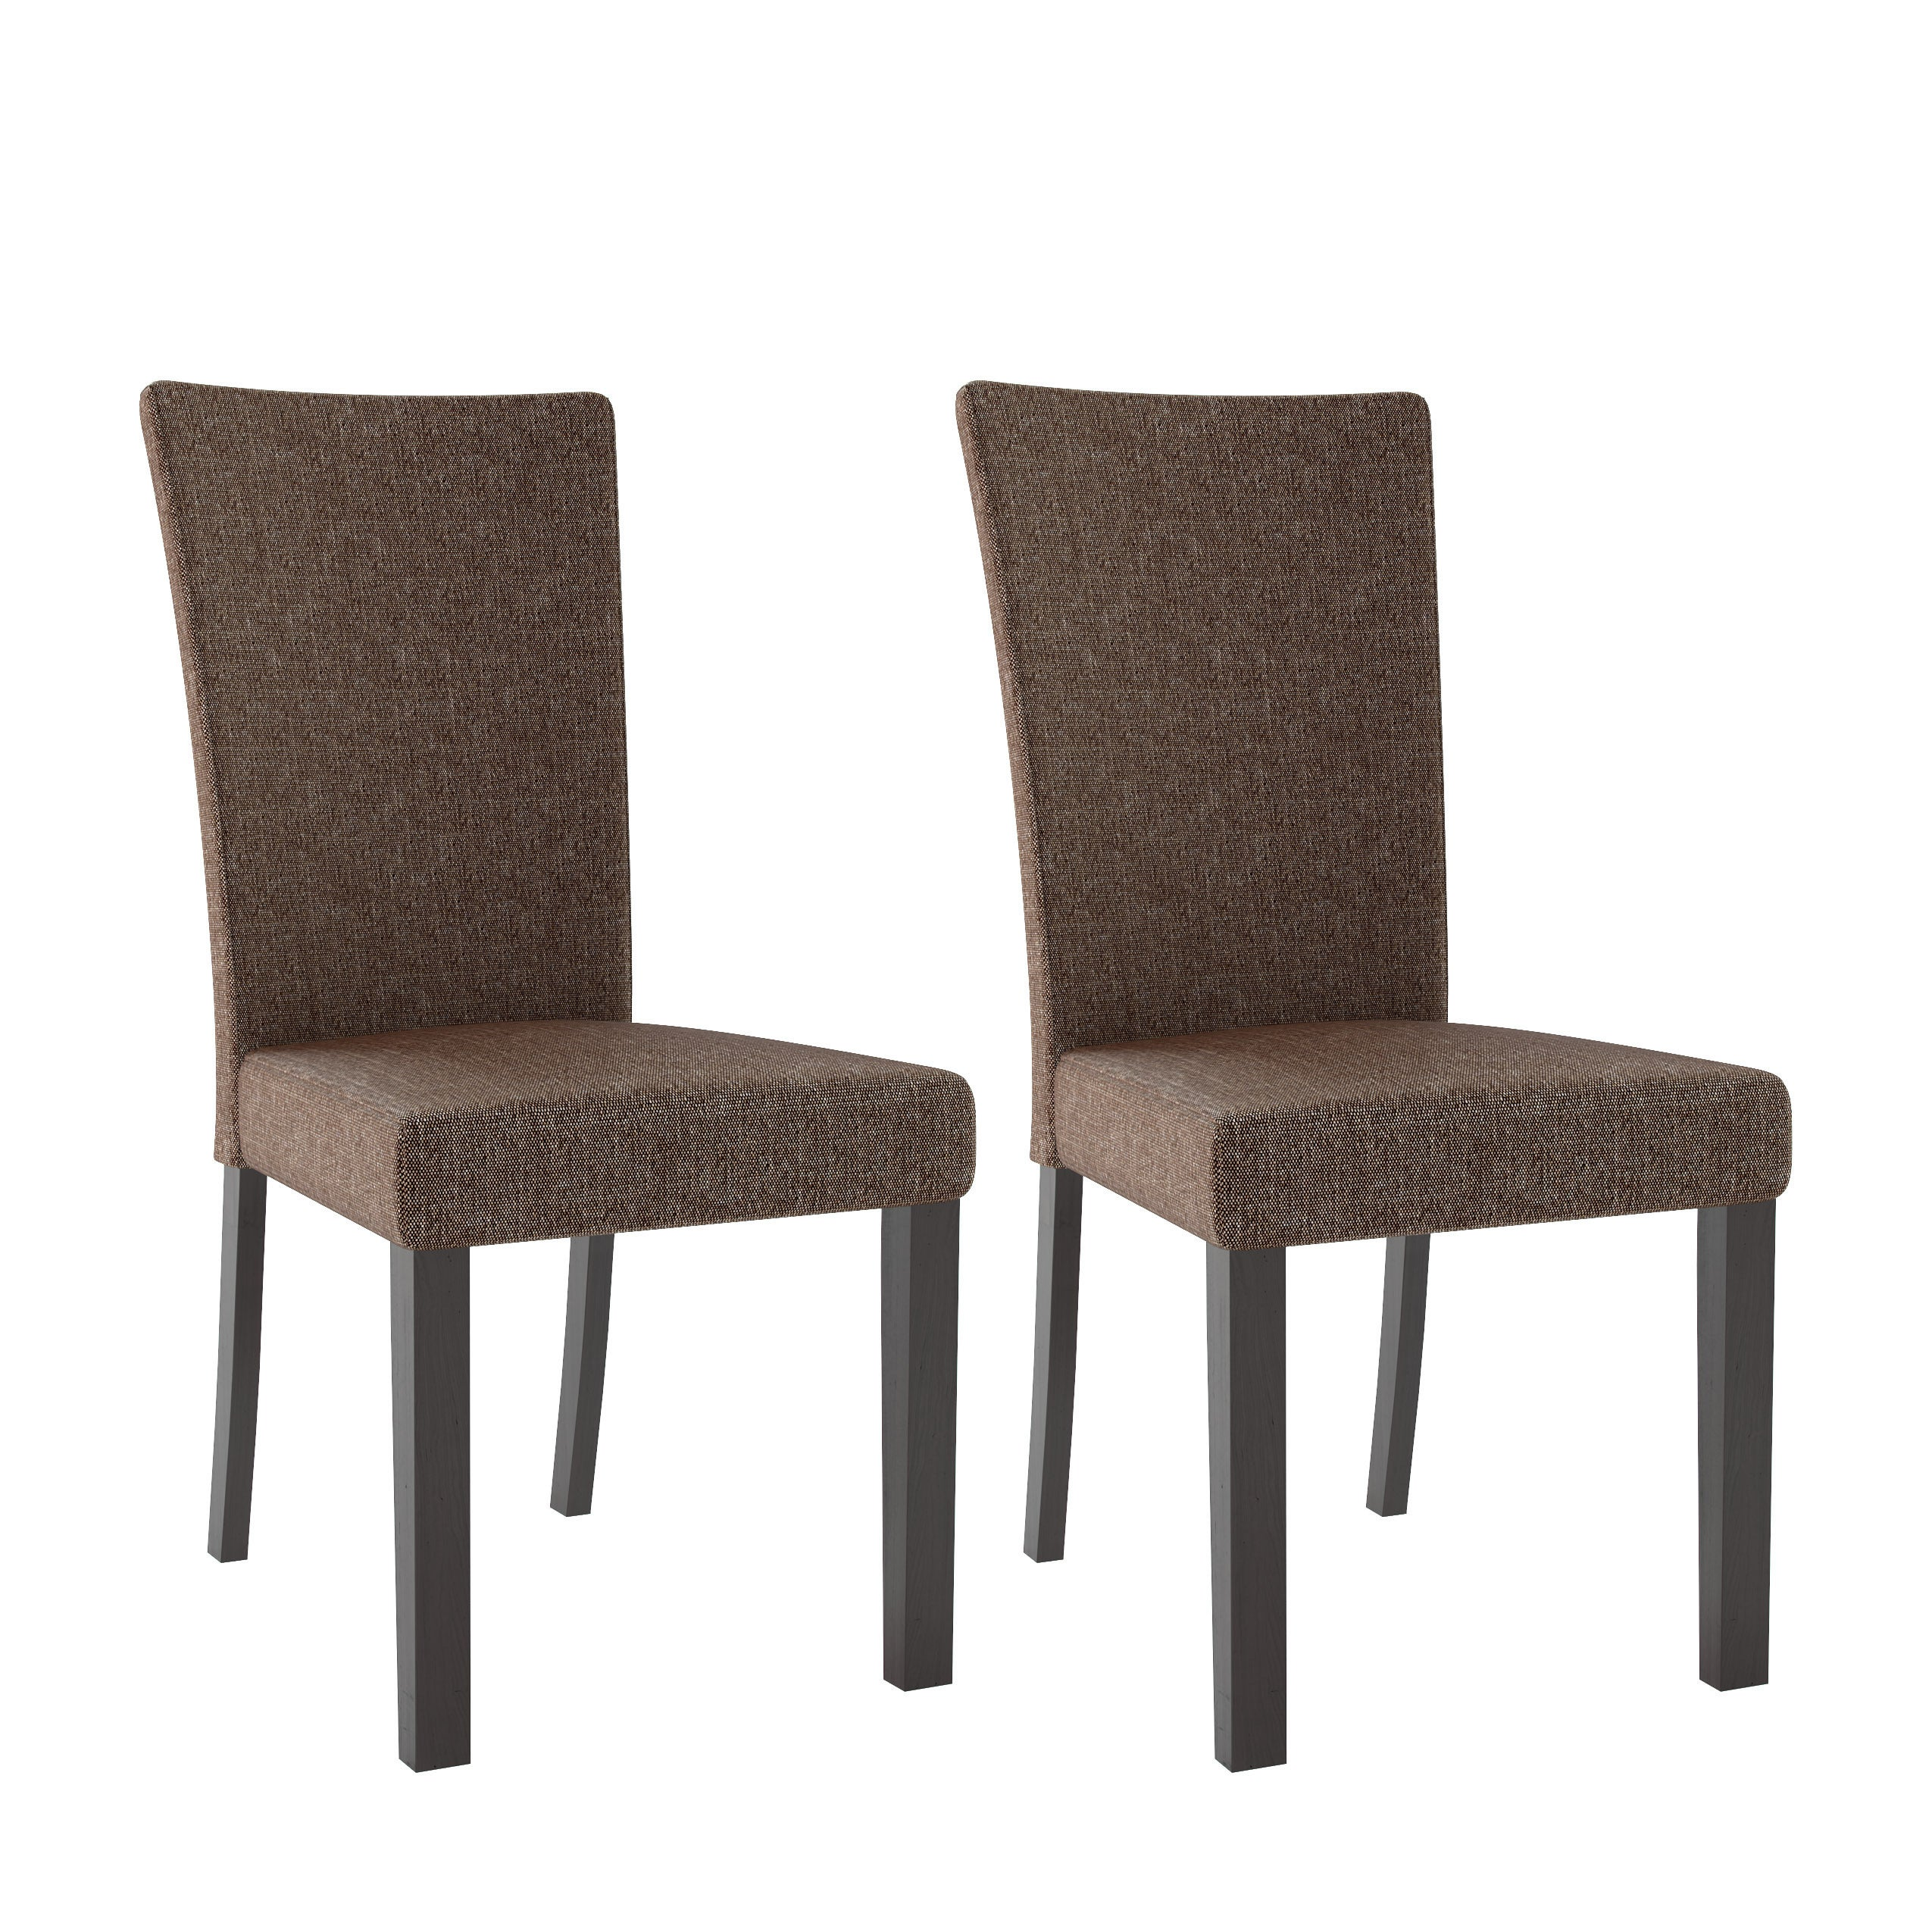 Bistro woven fabric dining chairs set of 2